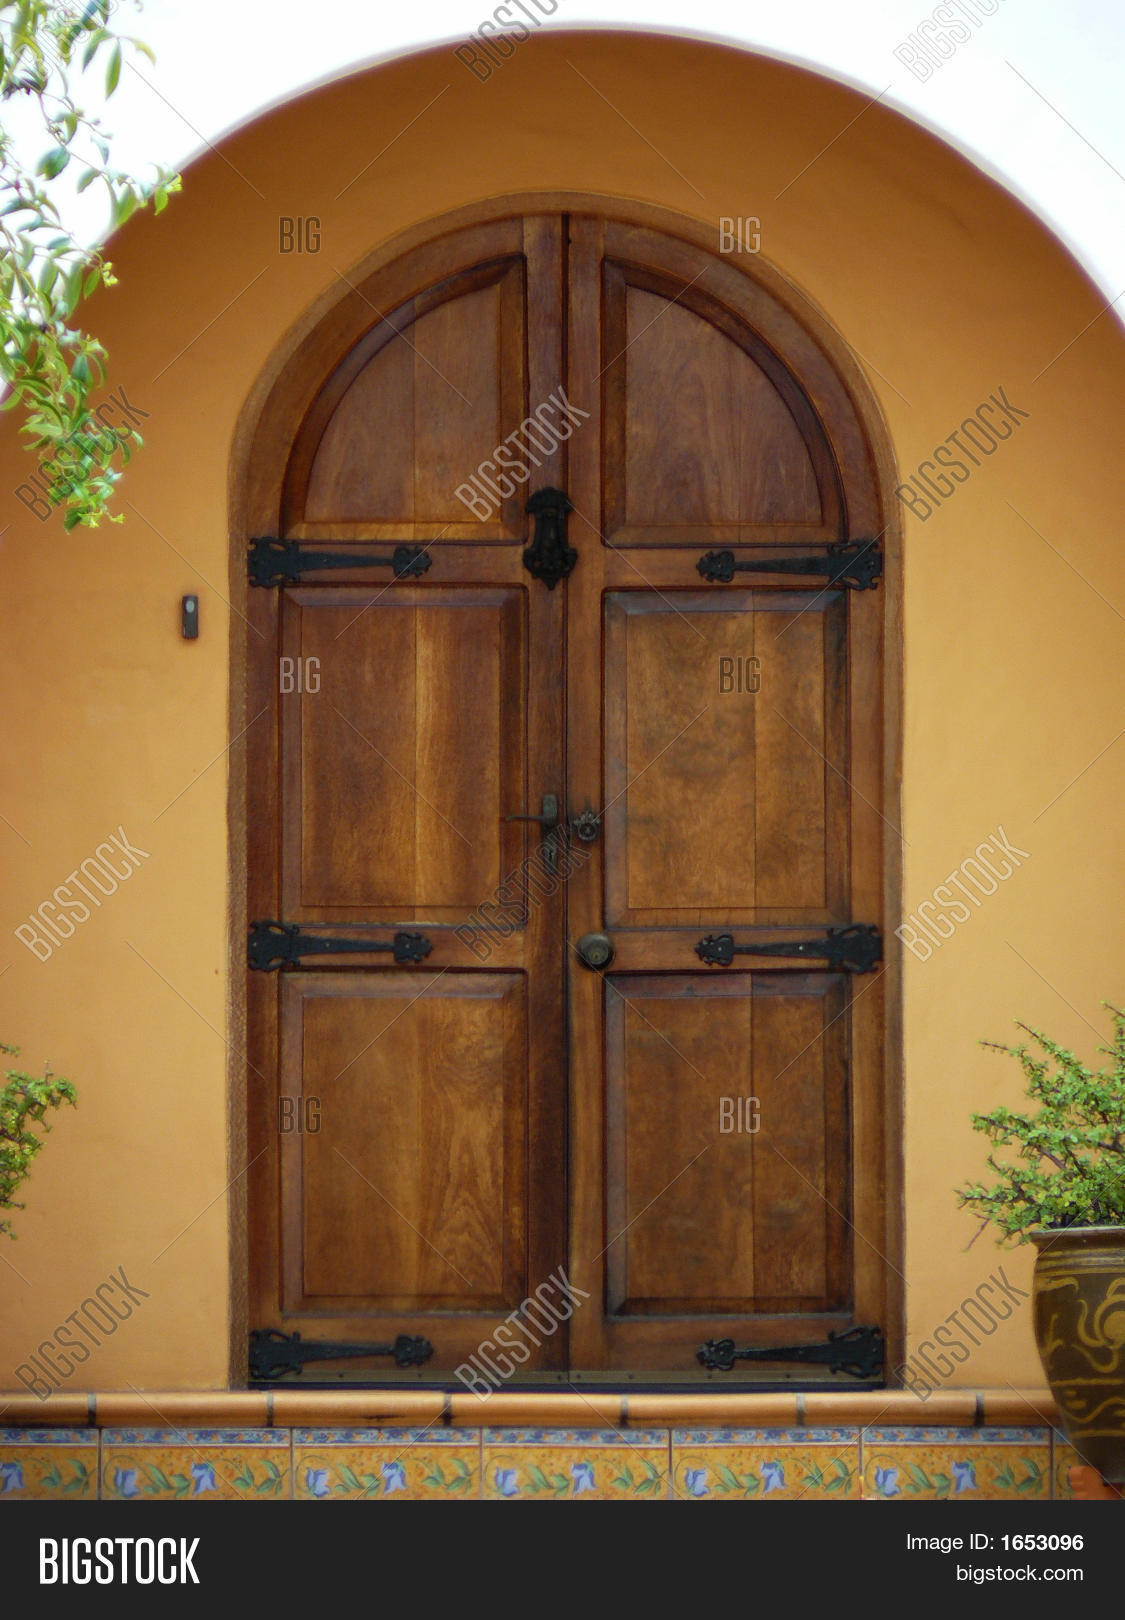 1620 #6E4223 Front Door Arched Wooden Stock Photo & Stock Images Bigstock save image Arch Doors Exterior 39771125